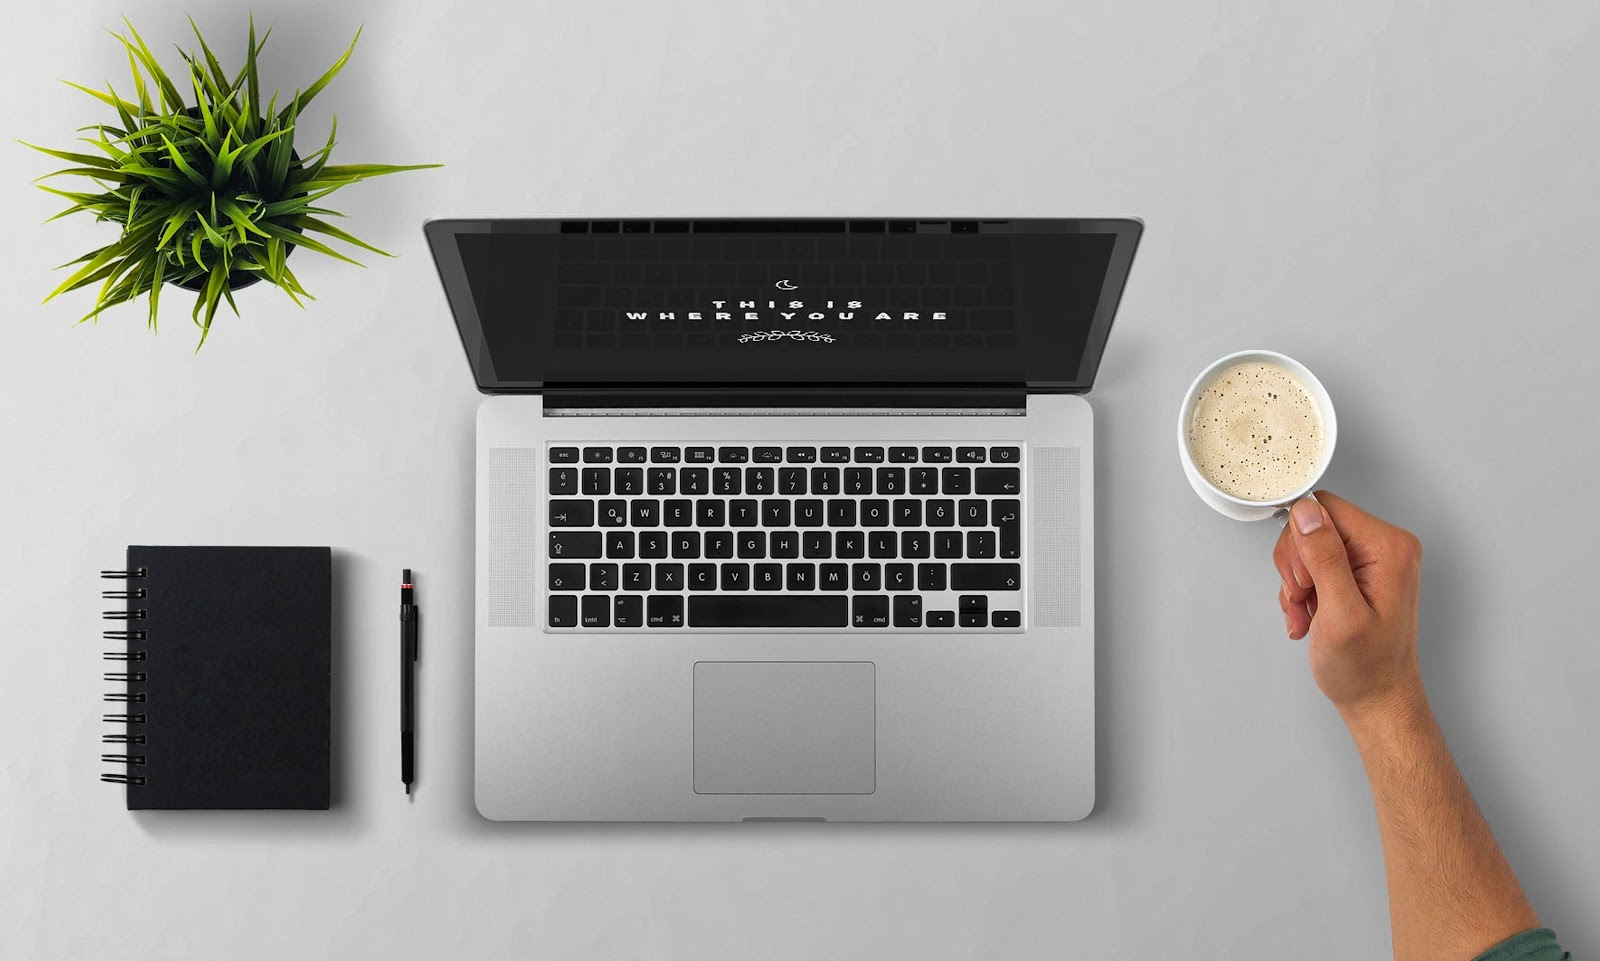 a silver laptop next to a person's hand holding a coffee and a black notebook and pen.